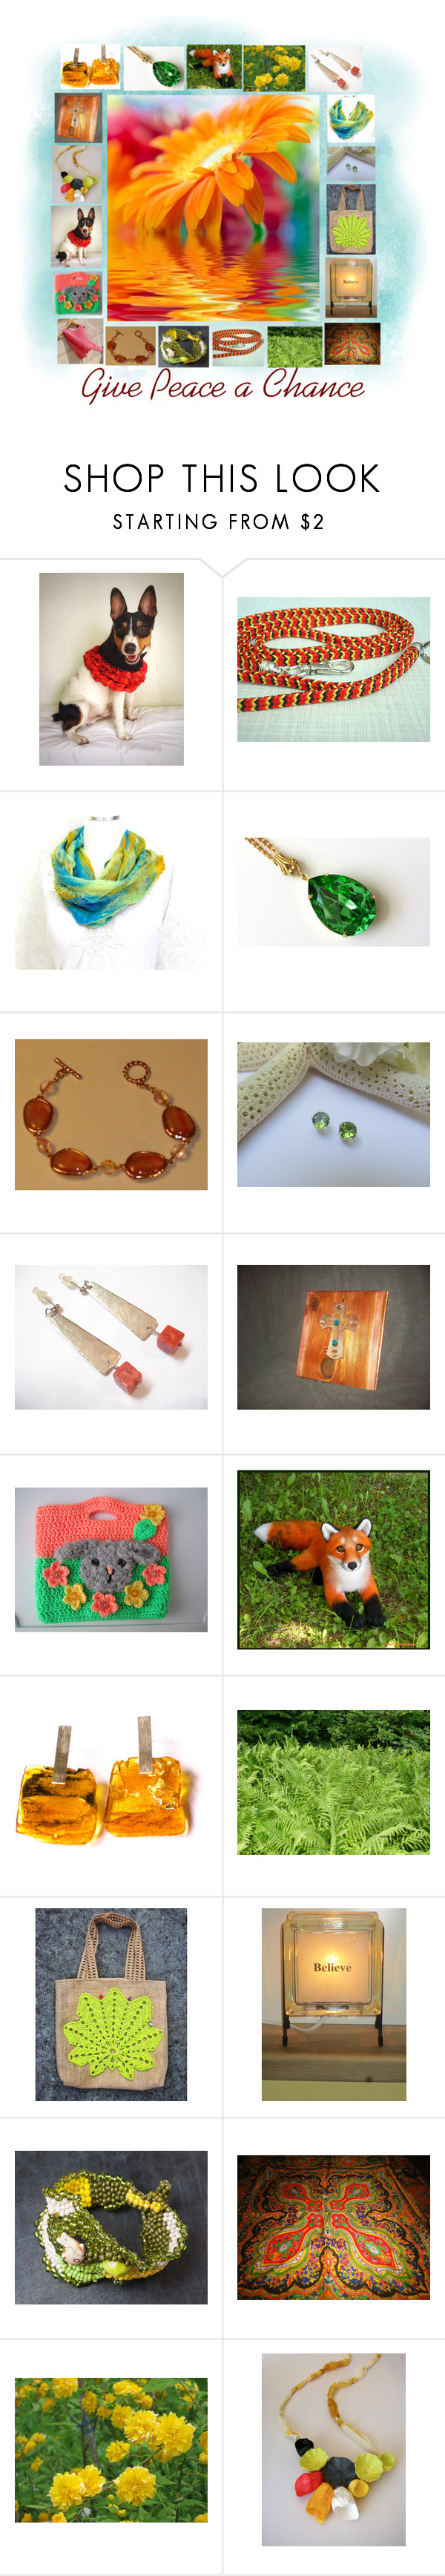 """Give Peace a Chance: Handmade & Vintage Gift Ideas"" by paulinemcewen on Polyvore featuring rustic, vintage and country"